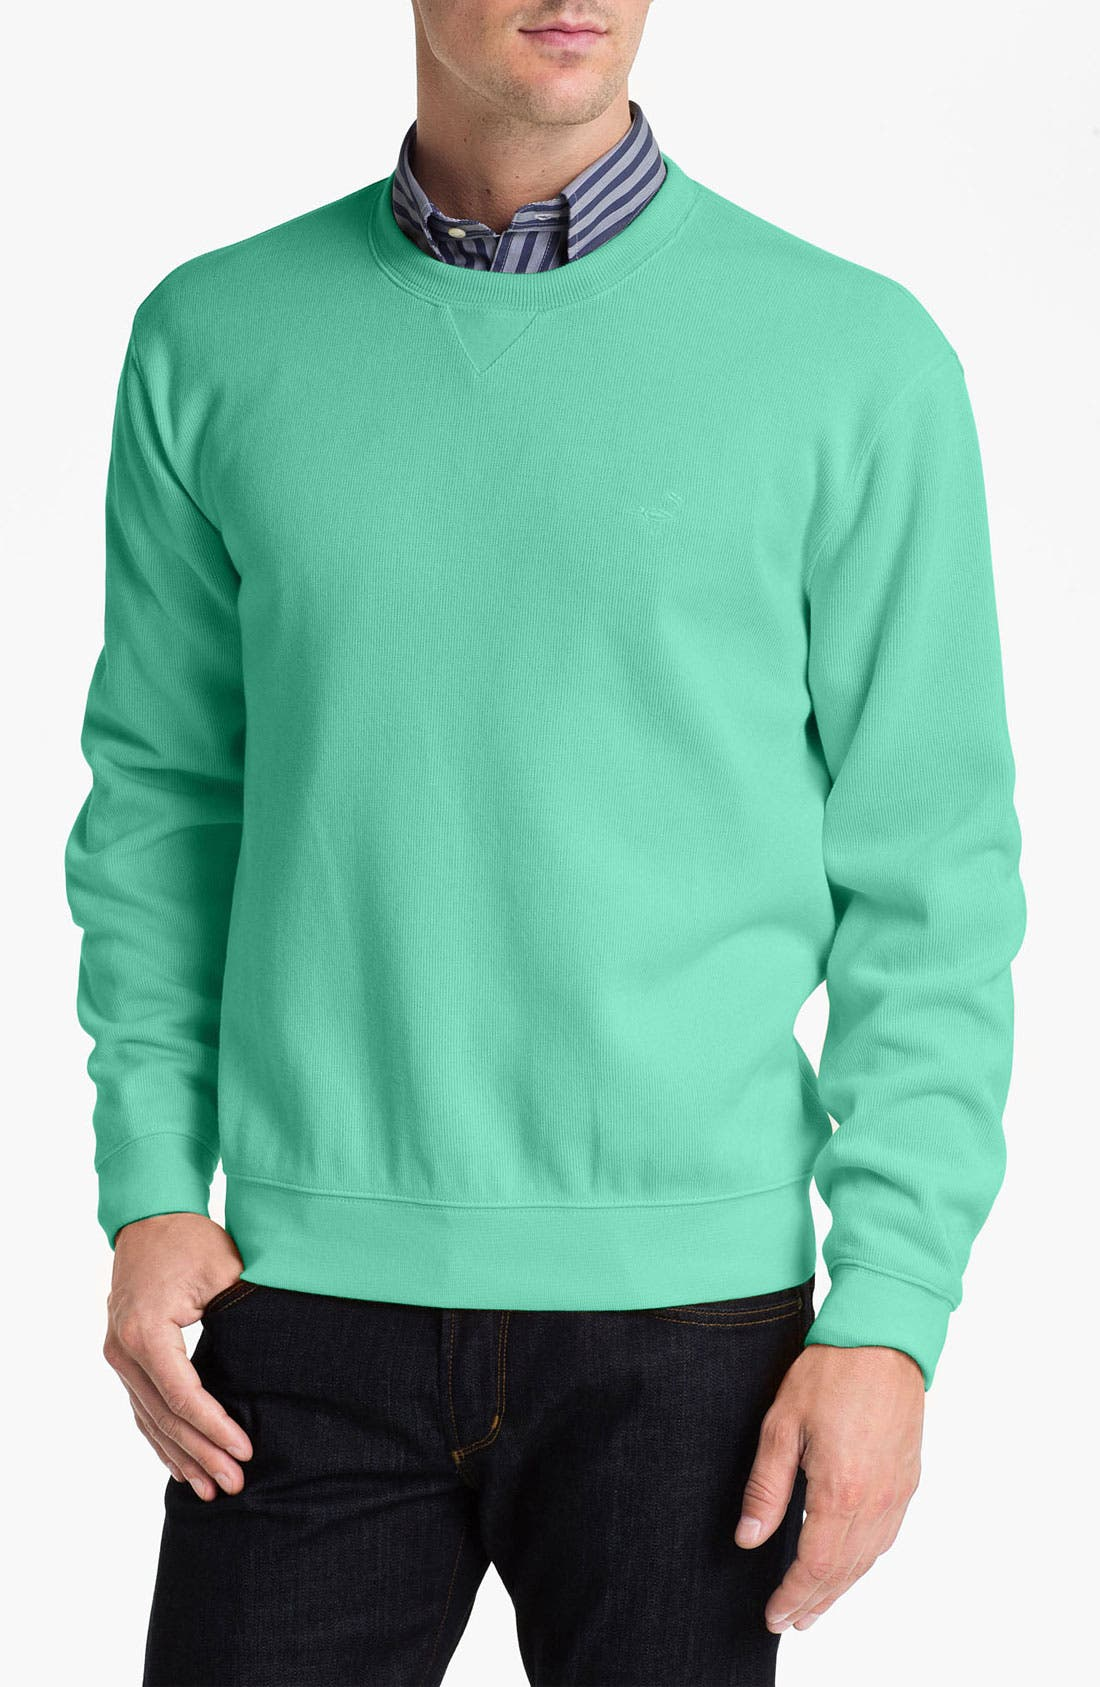 Alternate Image 1 Selected - Façonnable Crewneck Regular Fit Sweatshirt